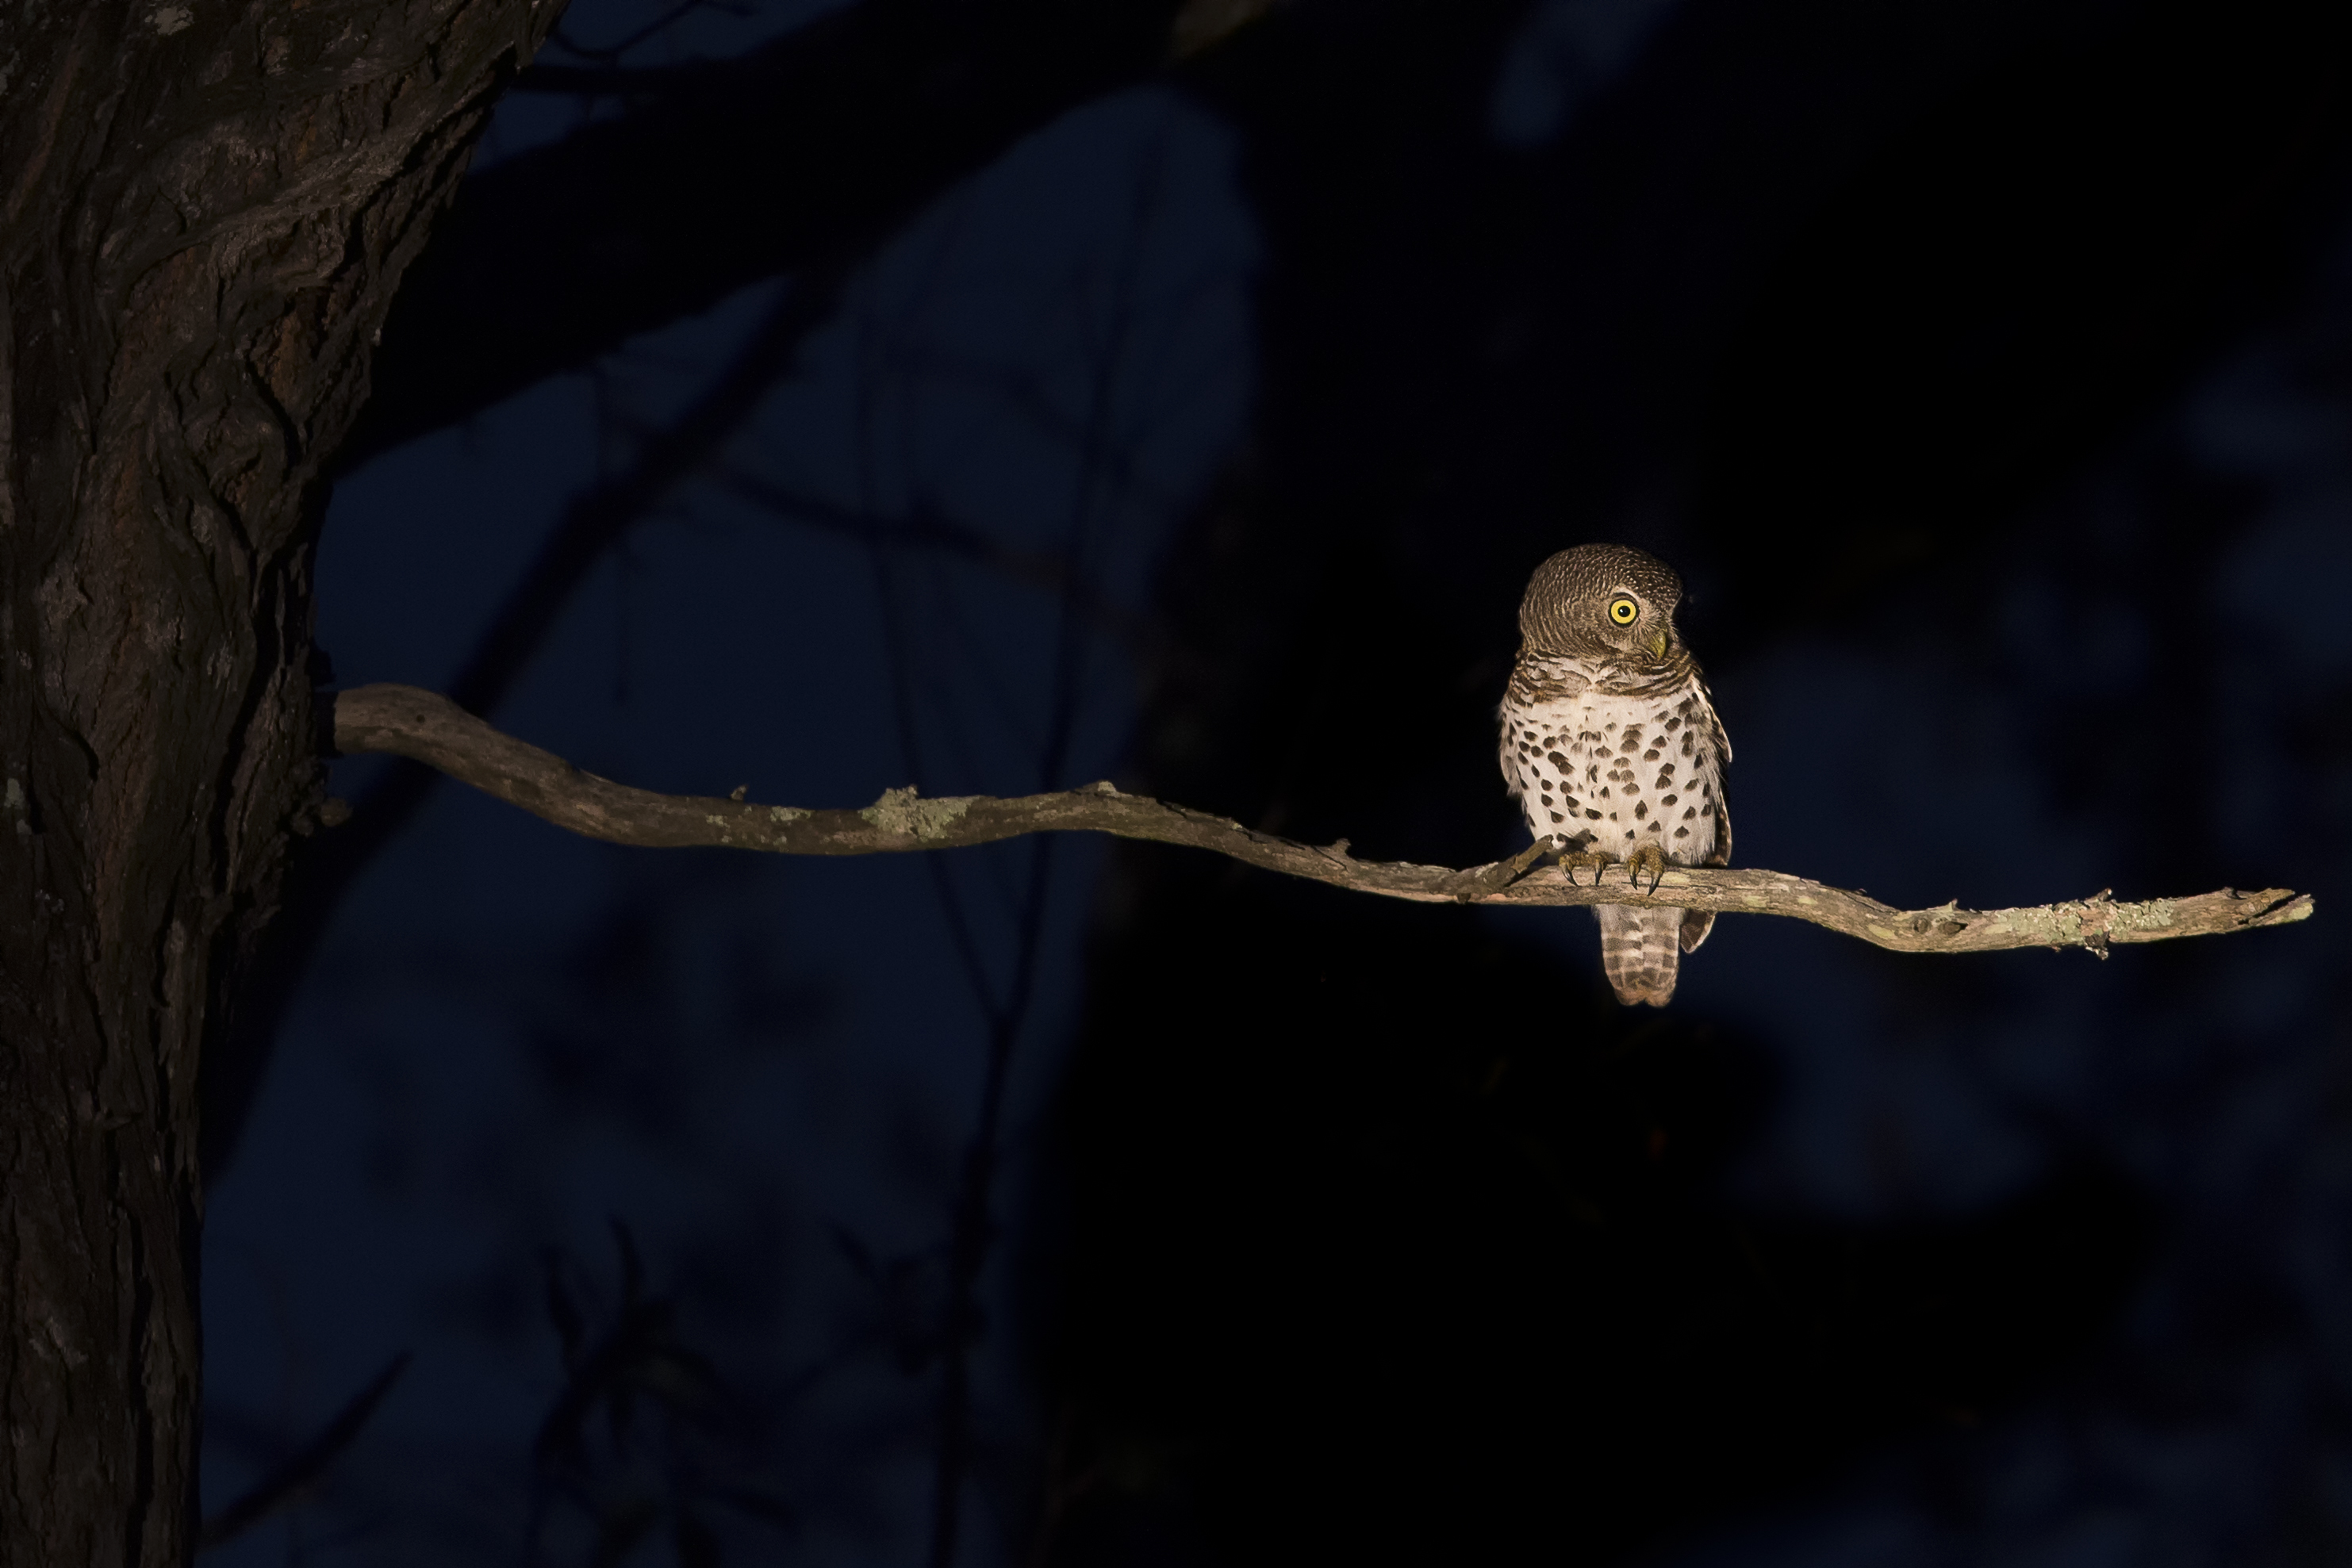 Barred owl on Gordon's Park stargazing night hike